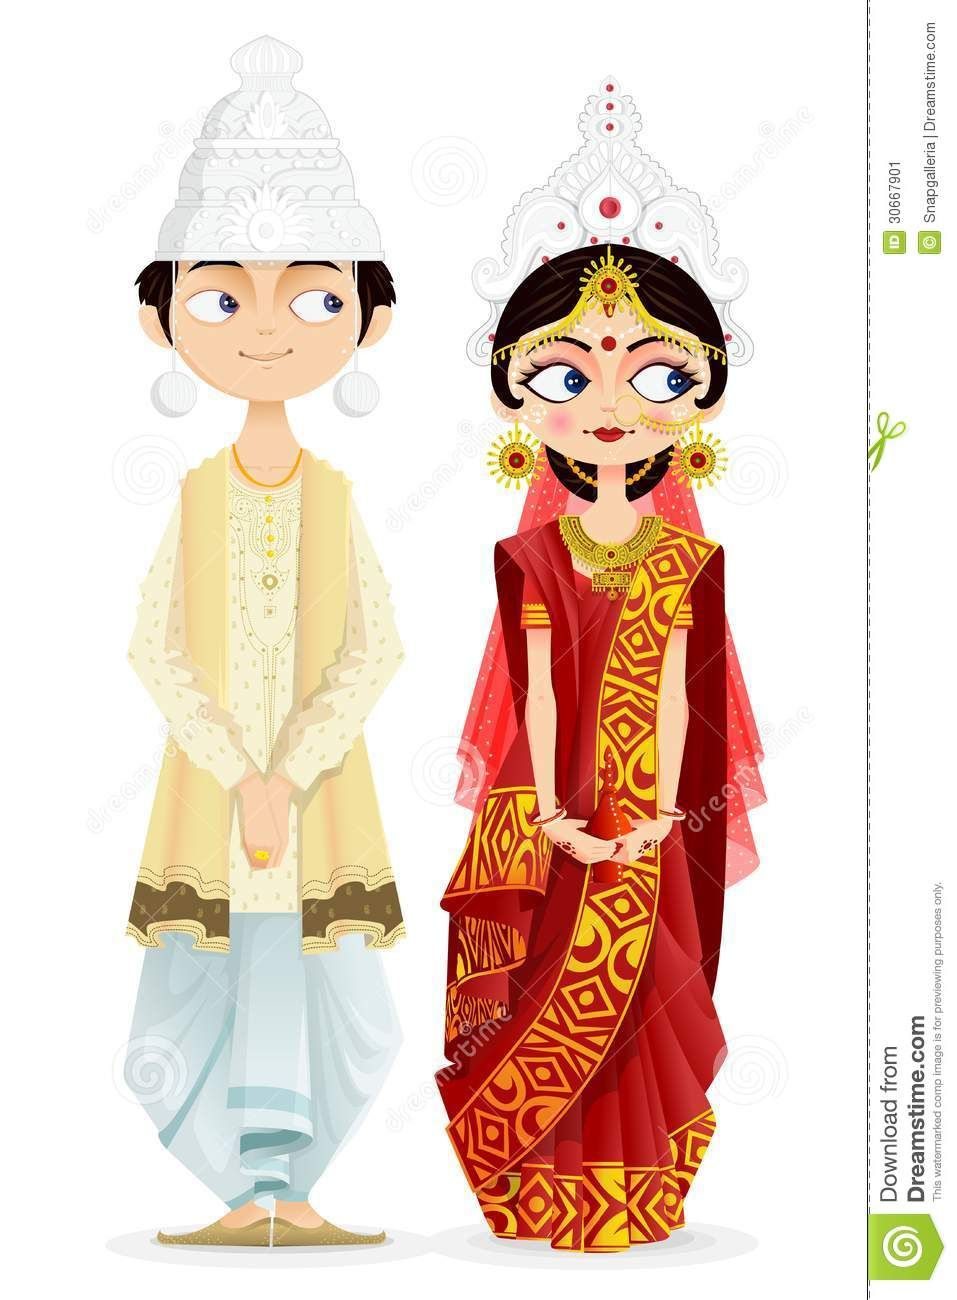 Bengali Wedding Couple - Download From Over 65 Million High Quality ...